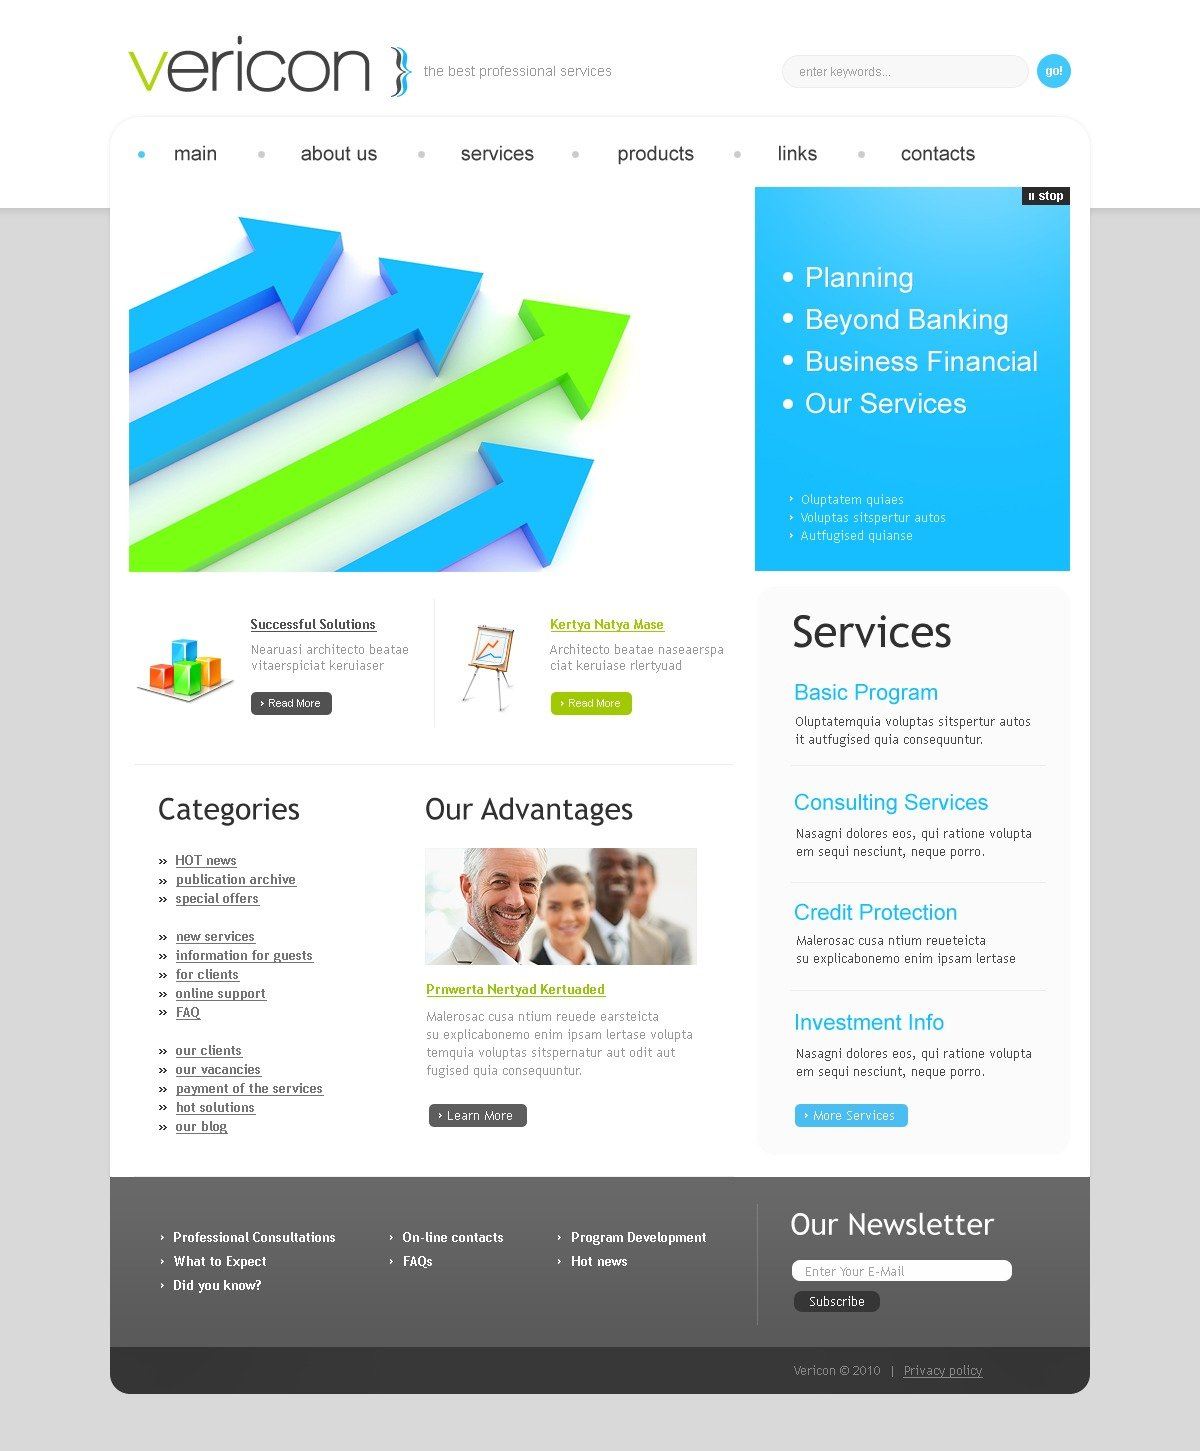 The Vericon Business Company PSD Design 54333, one of the best PSD templates of its kind (business, flash 8, wide), also known as vericon business company PSD template, corporate solutions PSD template, innovations PSD template, contacts PSD template, service PSD template, support PSD template, information dealer PSD template, stocks PSD template, team PSD template, success PSD template, money PSD template, marketing PSD template, director PSD template, manager PSD template, analytics PSD template, planning PSD template, limited PSD template, office PSD template, sales and related with vericon business company, corporate solutions, innovations, contacts, service, support, information dealer, stocks, team, success, money, marketing, director, manager, analytics, planning, limited, office, sales, etc.